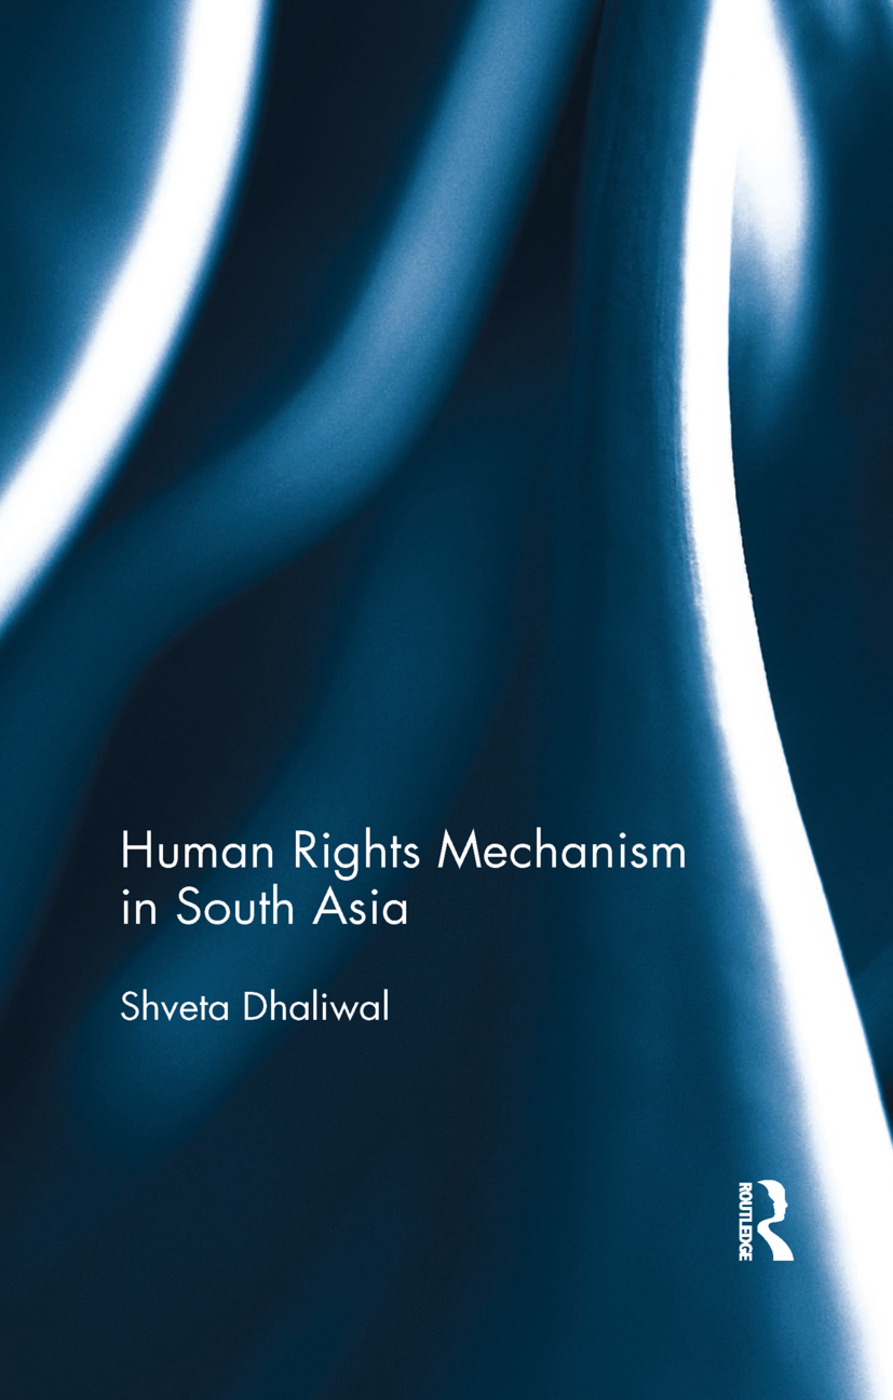 Human Rights Mechanism in South Asia